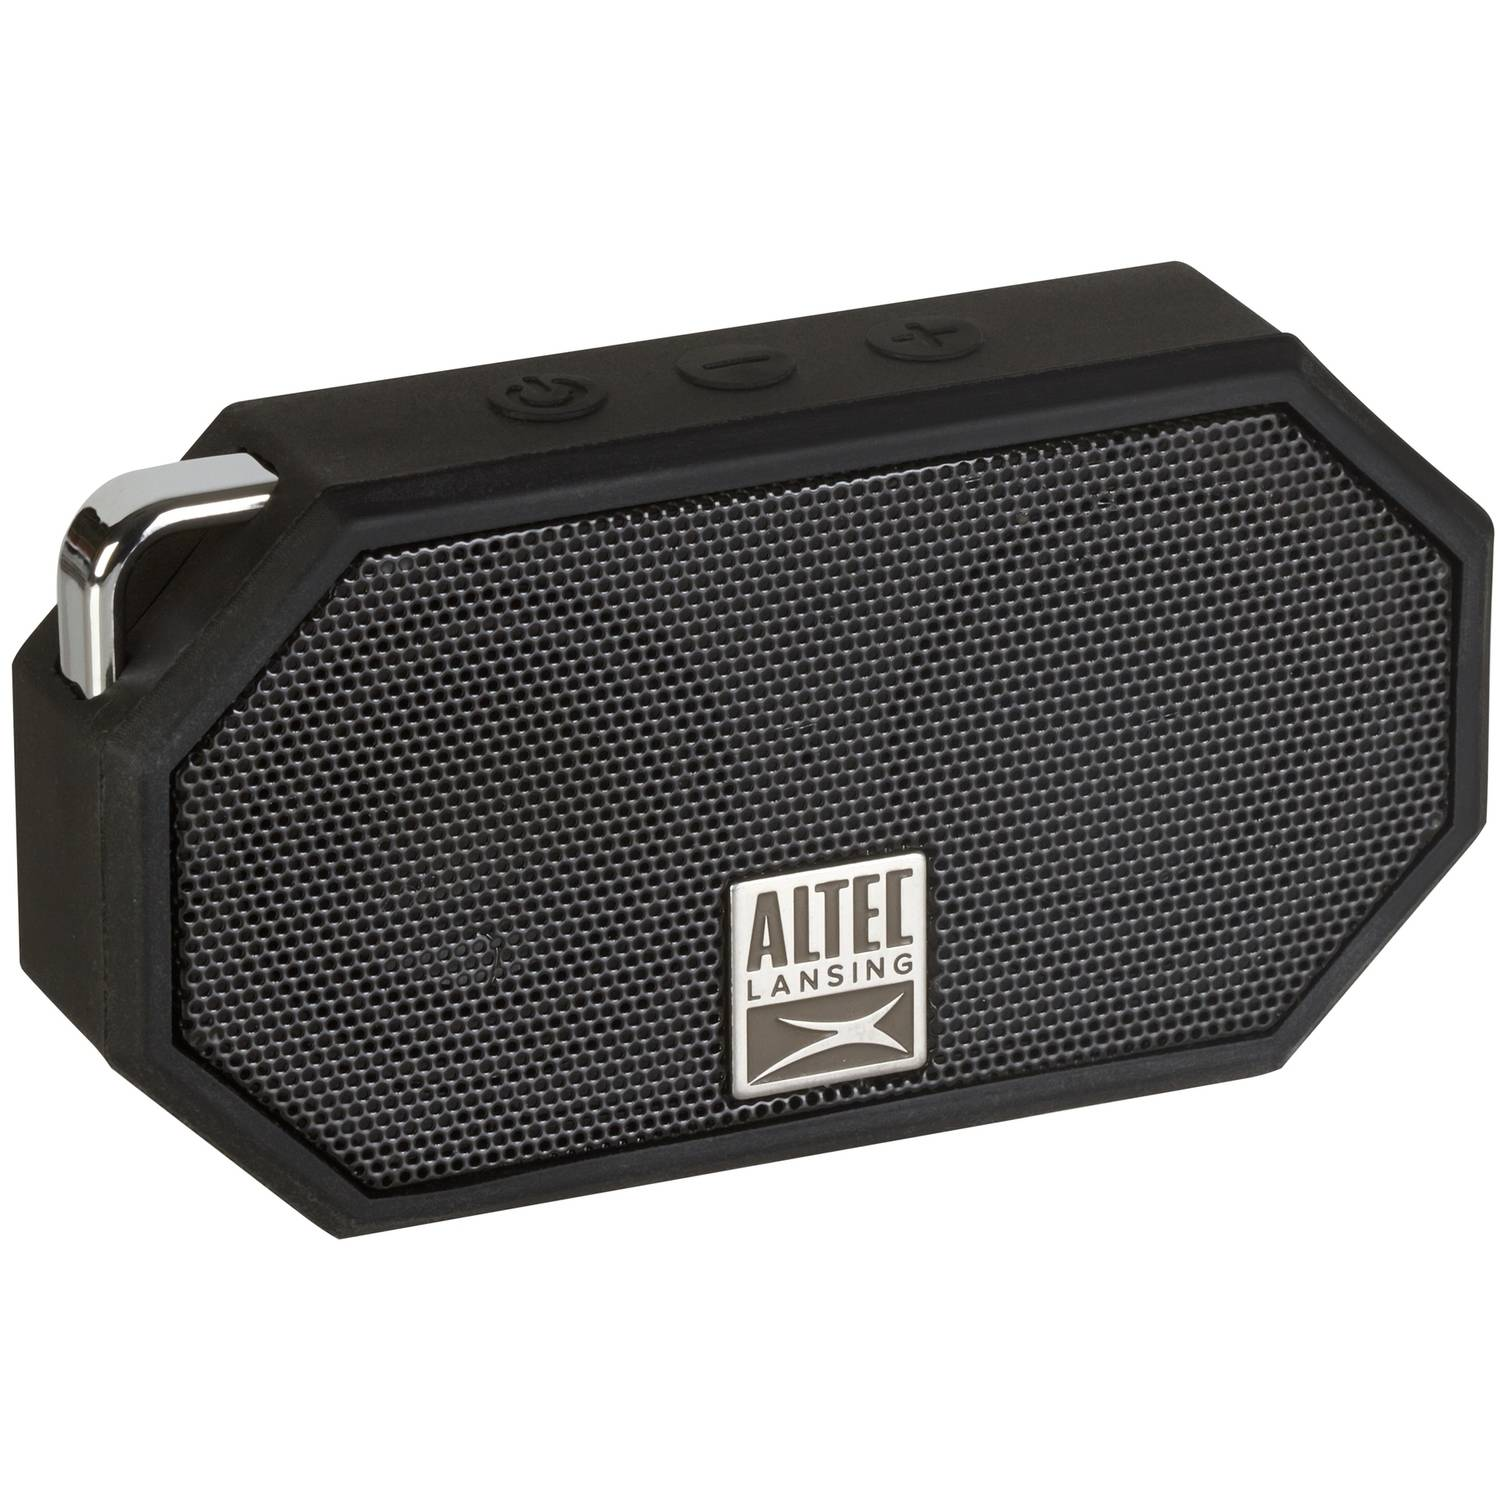 Altec Lansing iMW257 Mini H20 Bluetooth Speaker, Black by Altec Lancing